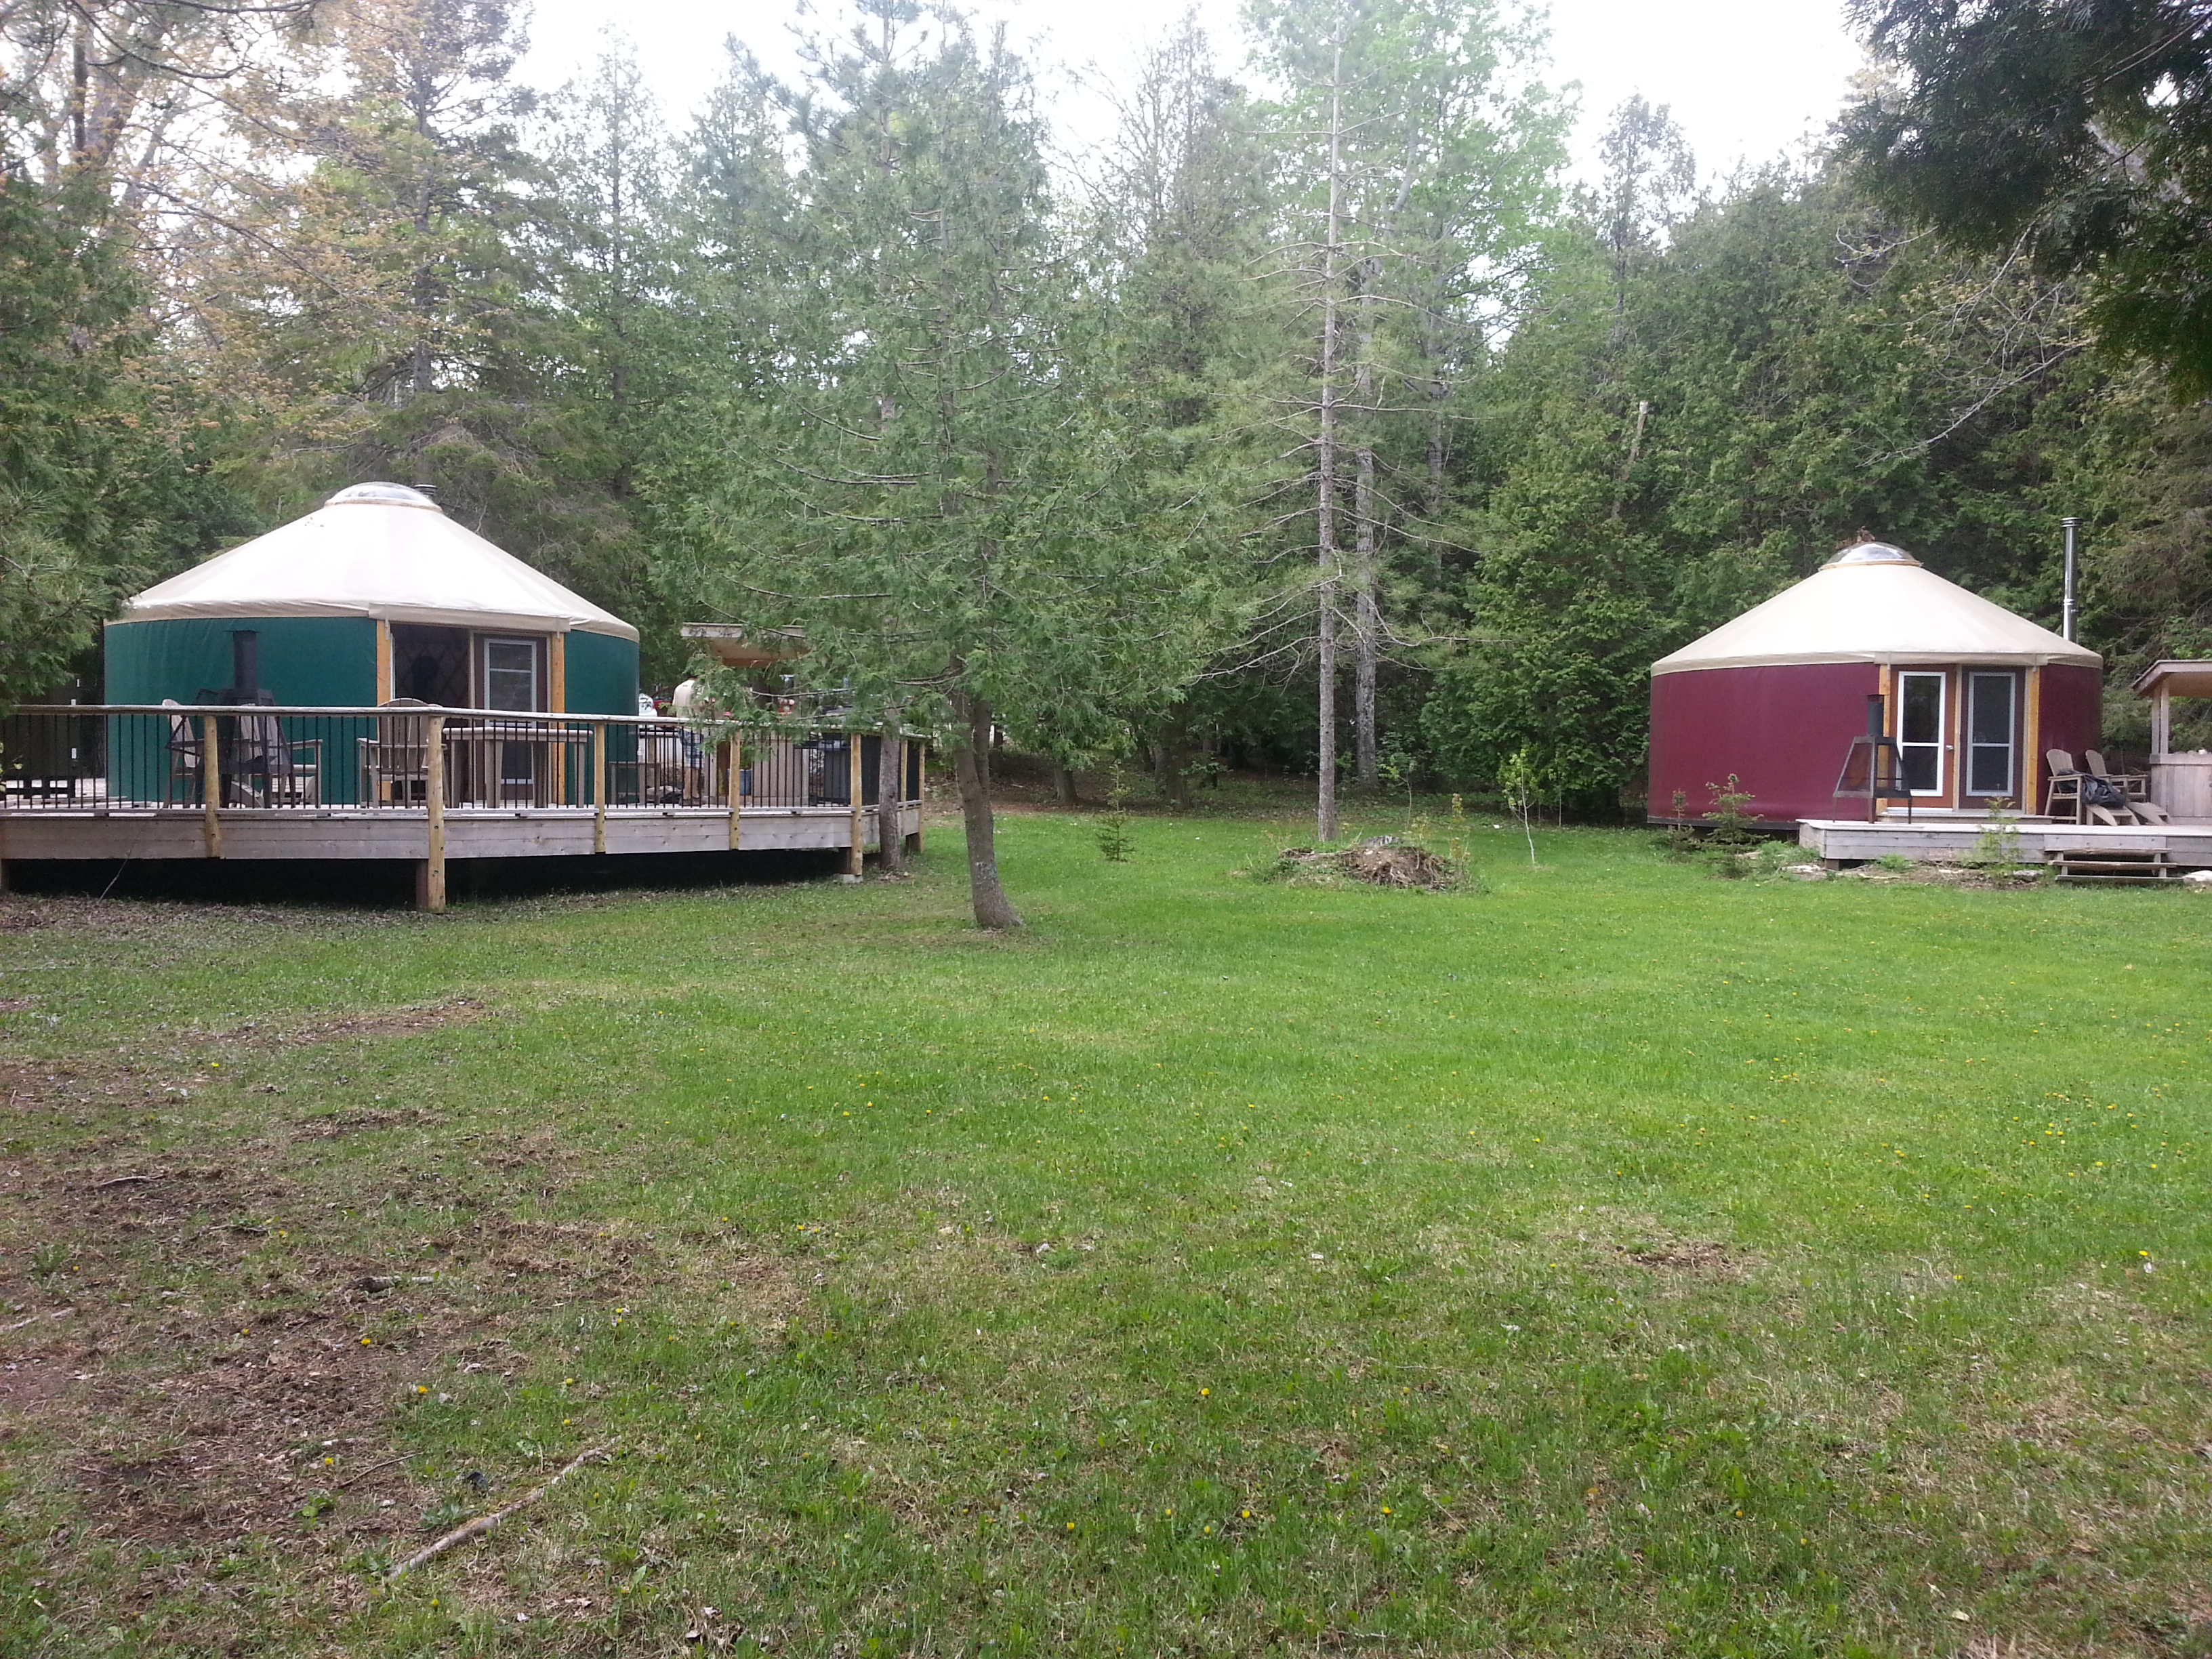 Cyprus Lake Yurts, Bruce Peninsula National Park